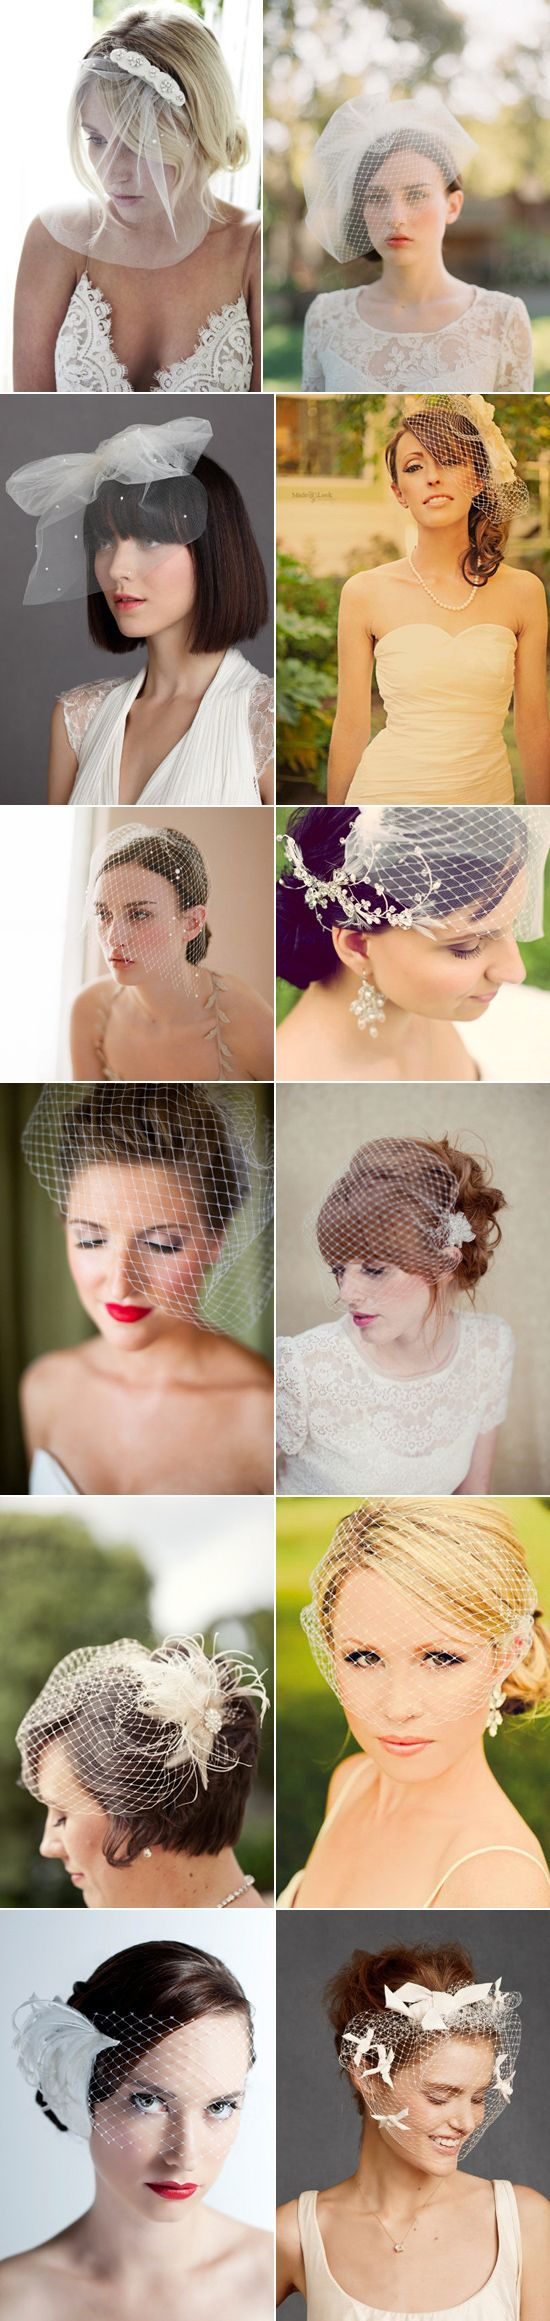 What's In A Veil – Birdcage Veils polkadotbride.com I want my hair like the red head with the fringe!